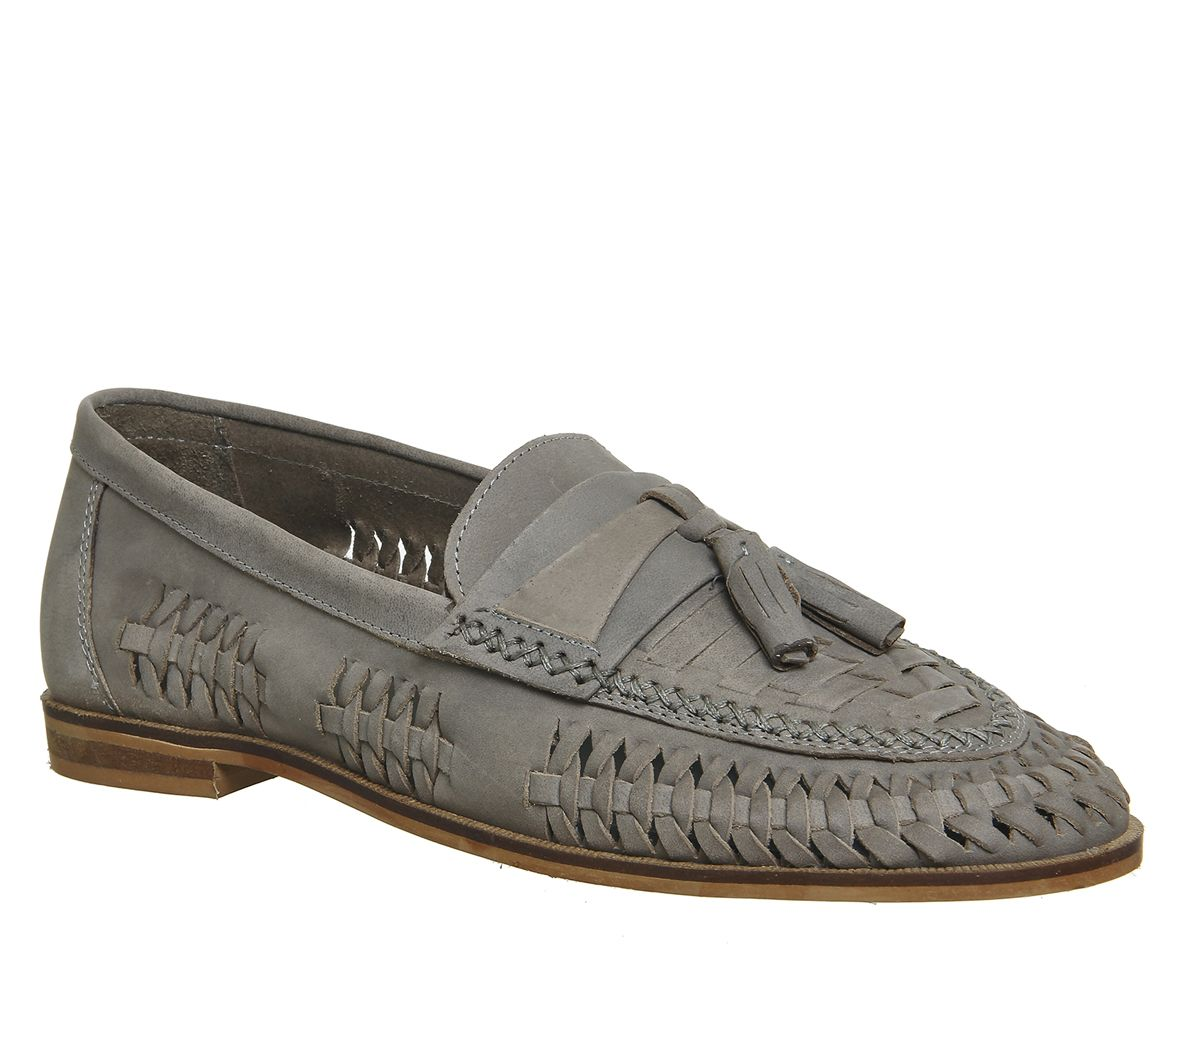 a34fee51776b Office Finsbury Woven Tassle Loafers Light Grey Leather - Casual